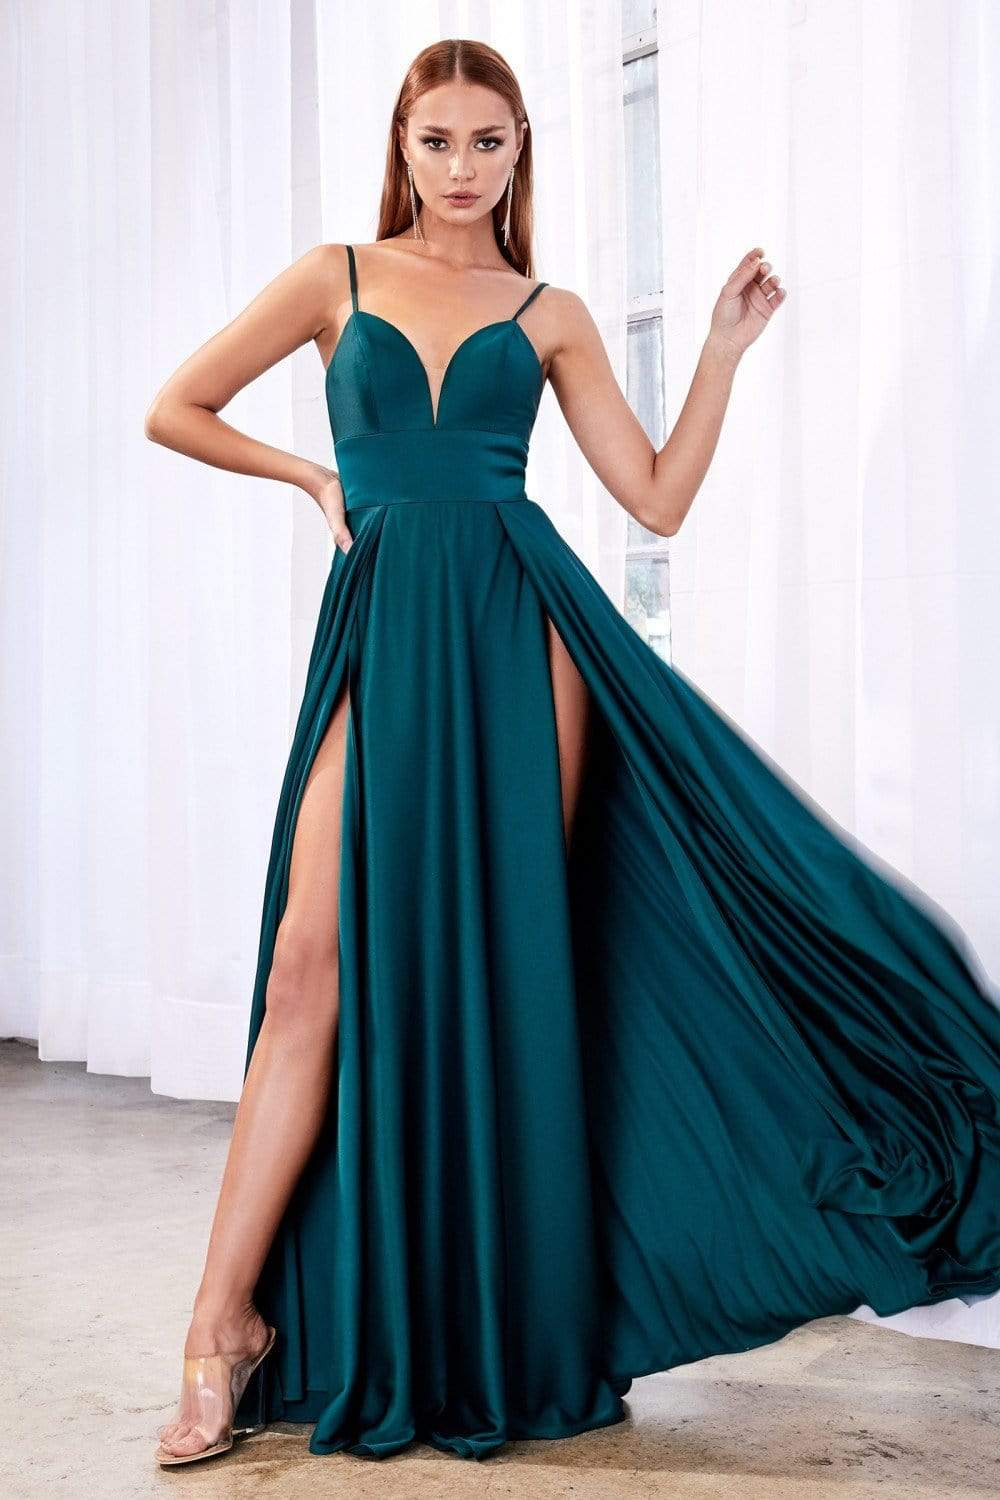 Cinderella Divine - CJ526 Sheer Plunging Neck Double Slit Satin Gown Special Occasion Dress